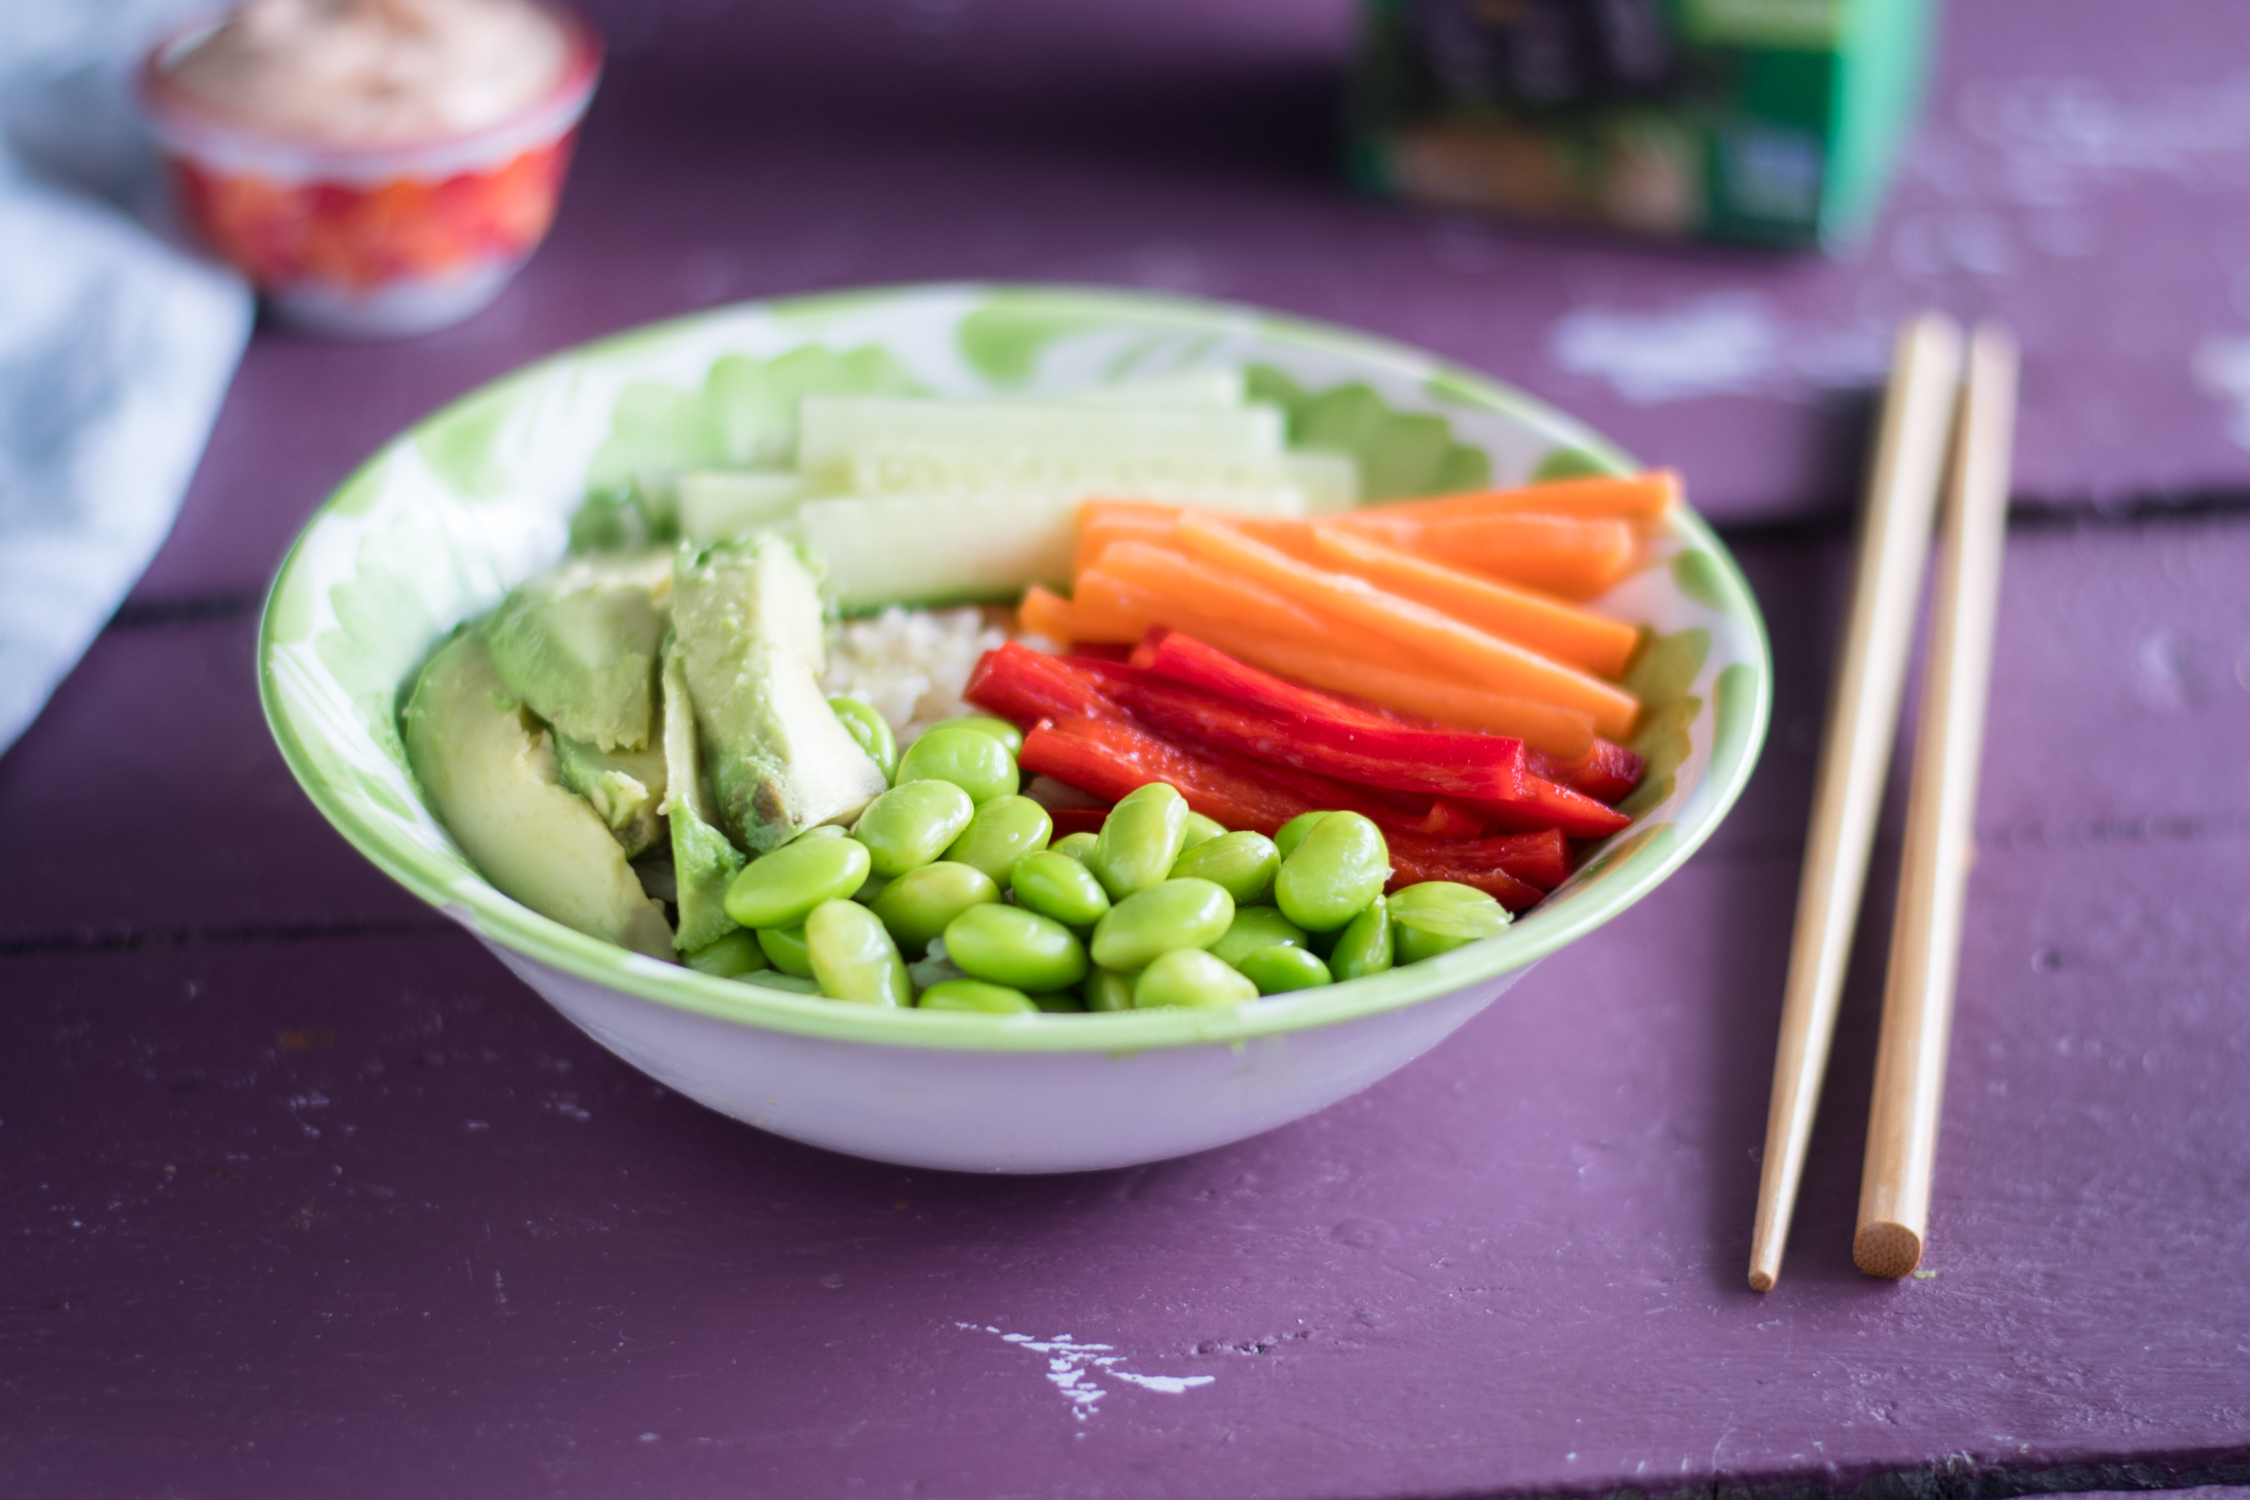 Vegan Sushi Bowls made with green tea infused rice. #vegan #tea #rice #recipes